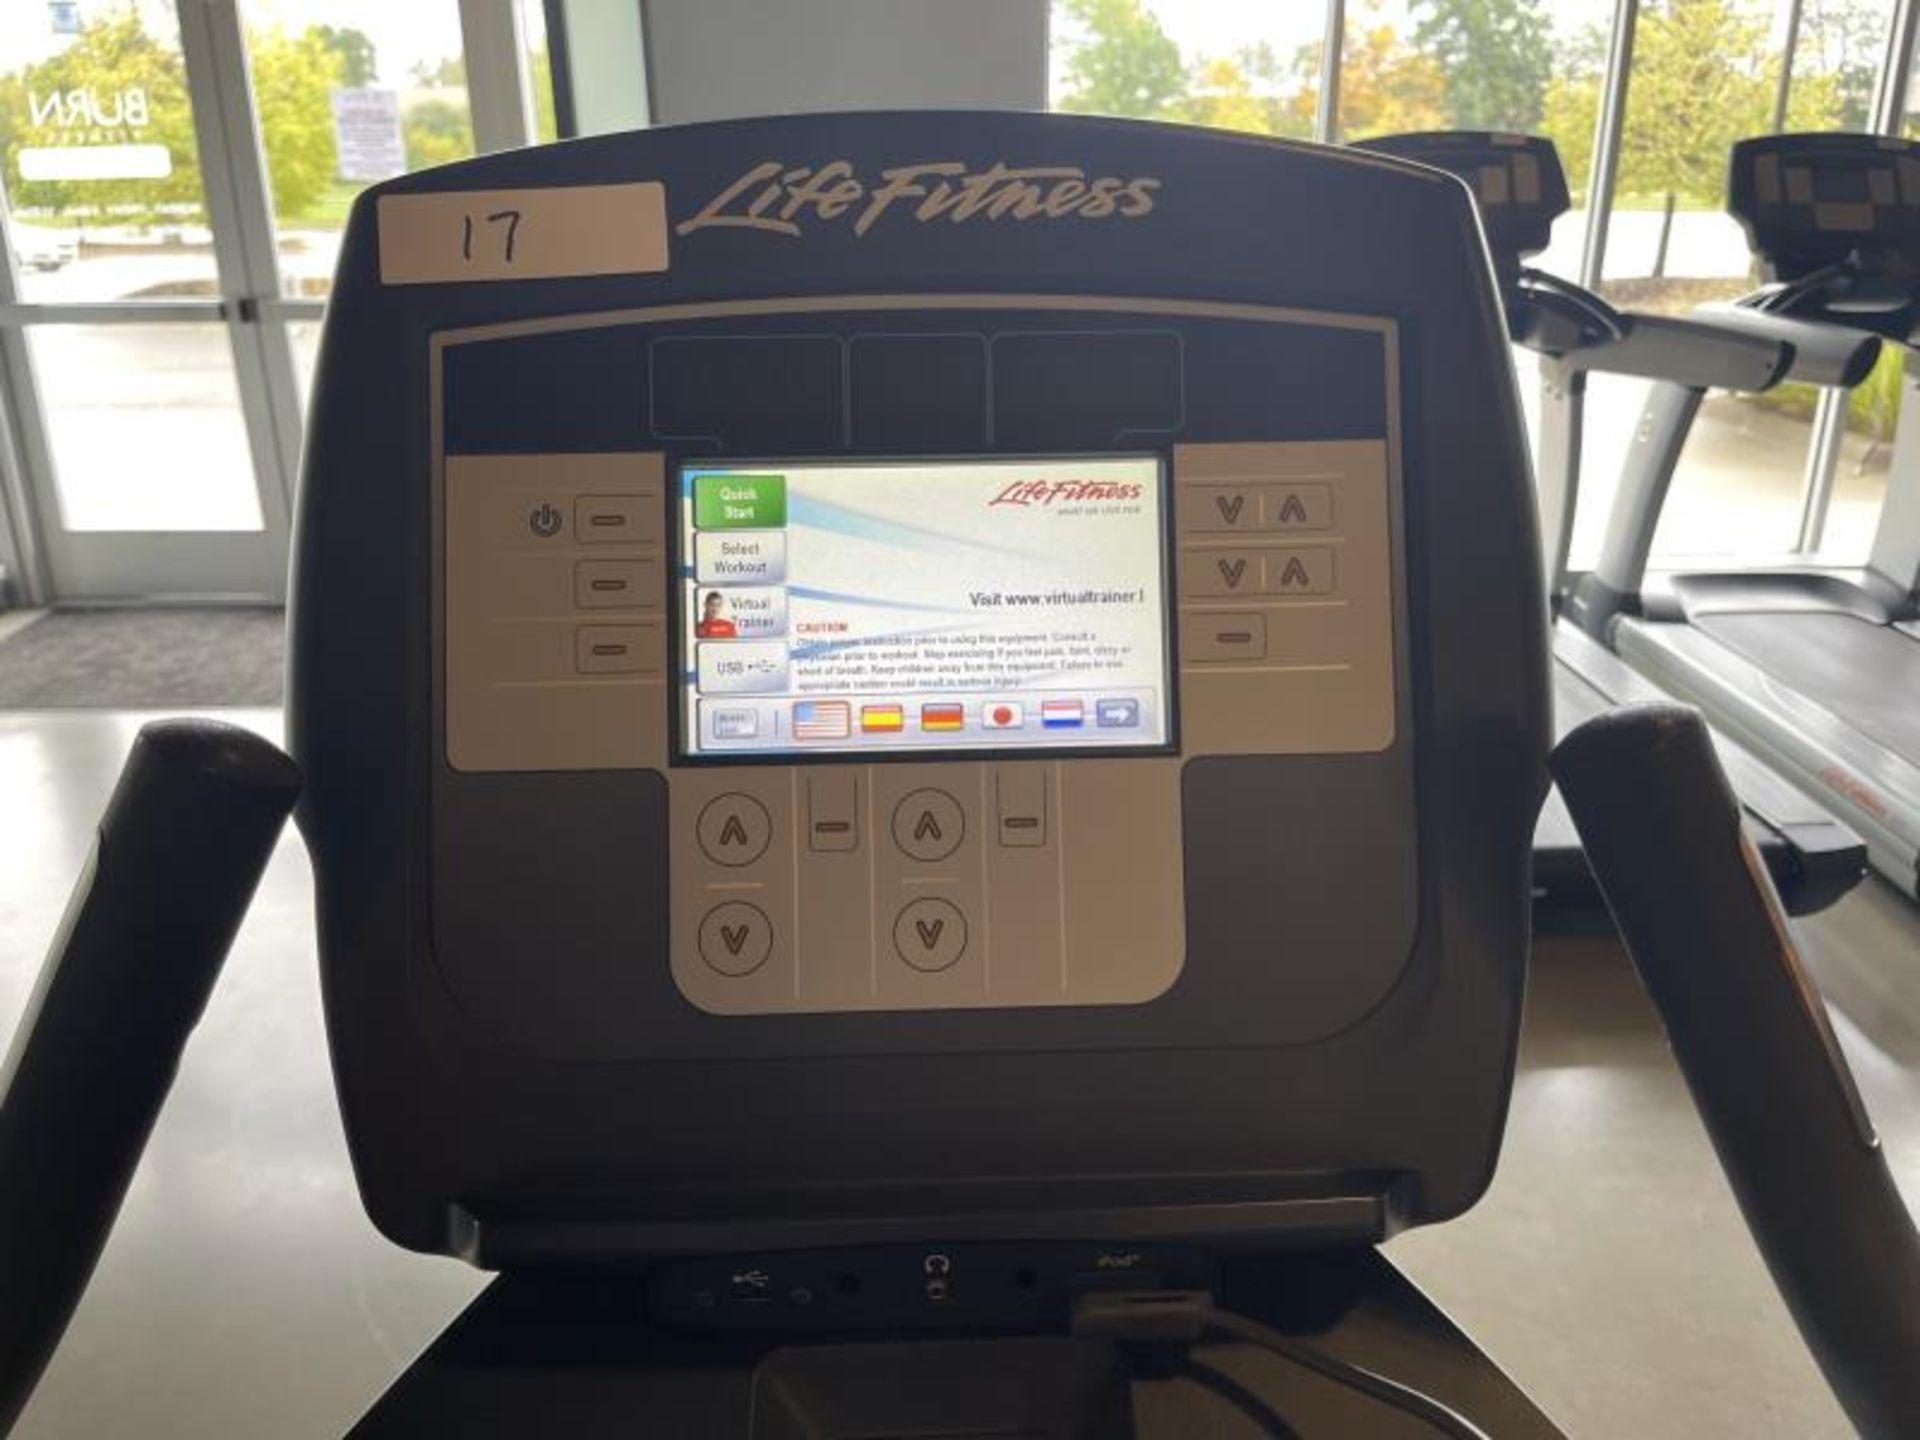 Life Fitness Exercise Bike M: 95CLifecycle, SN: CLV102819 - Image 5 of 5